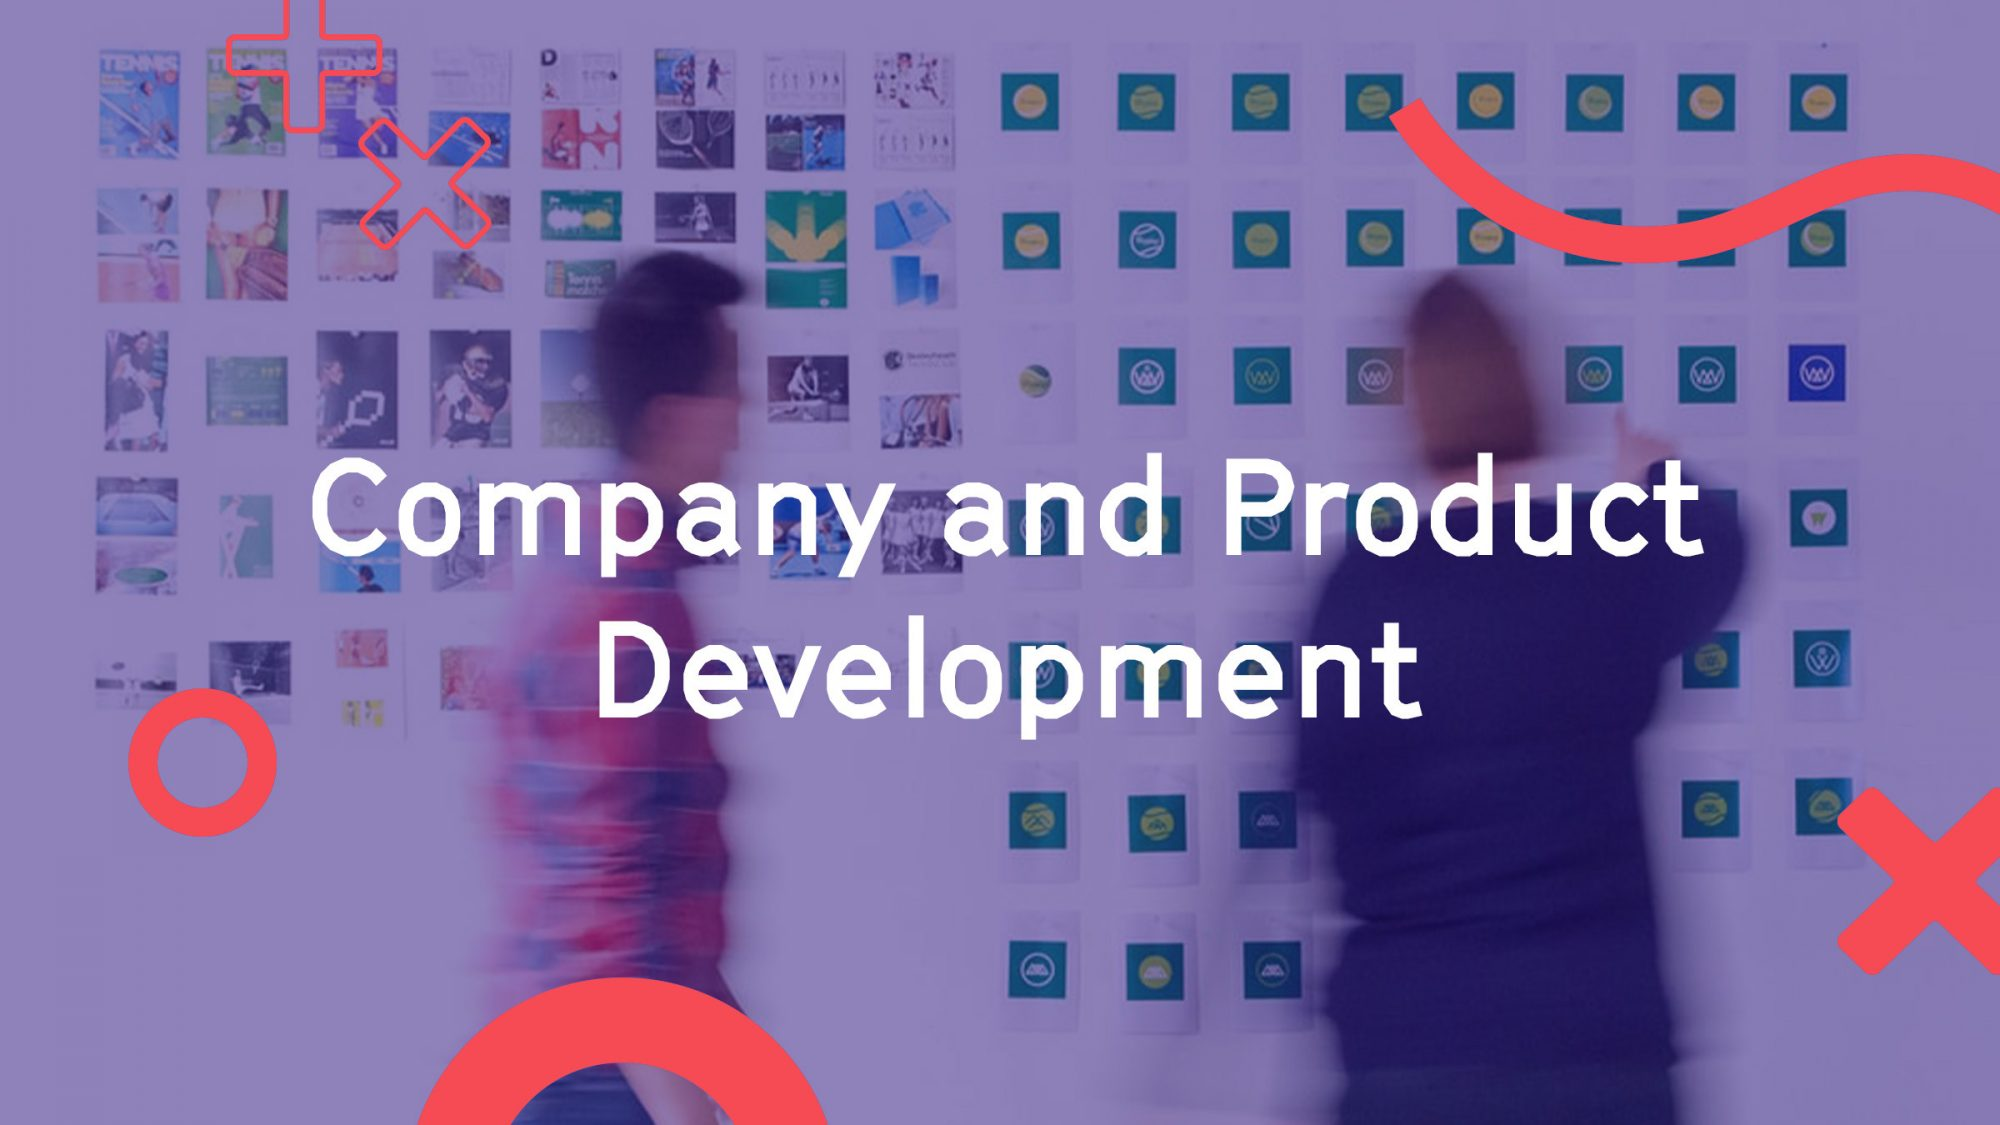 Company and Product Development